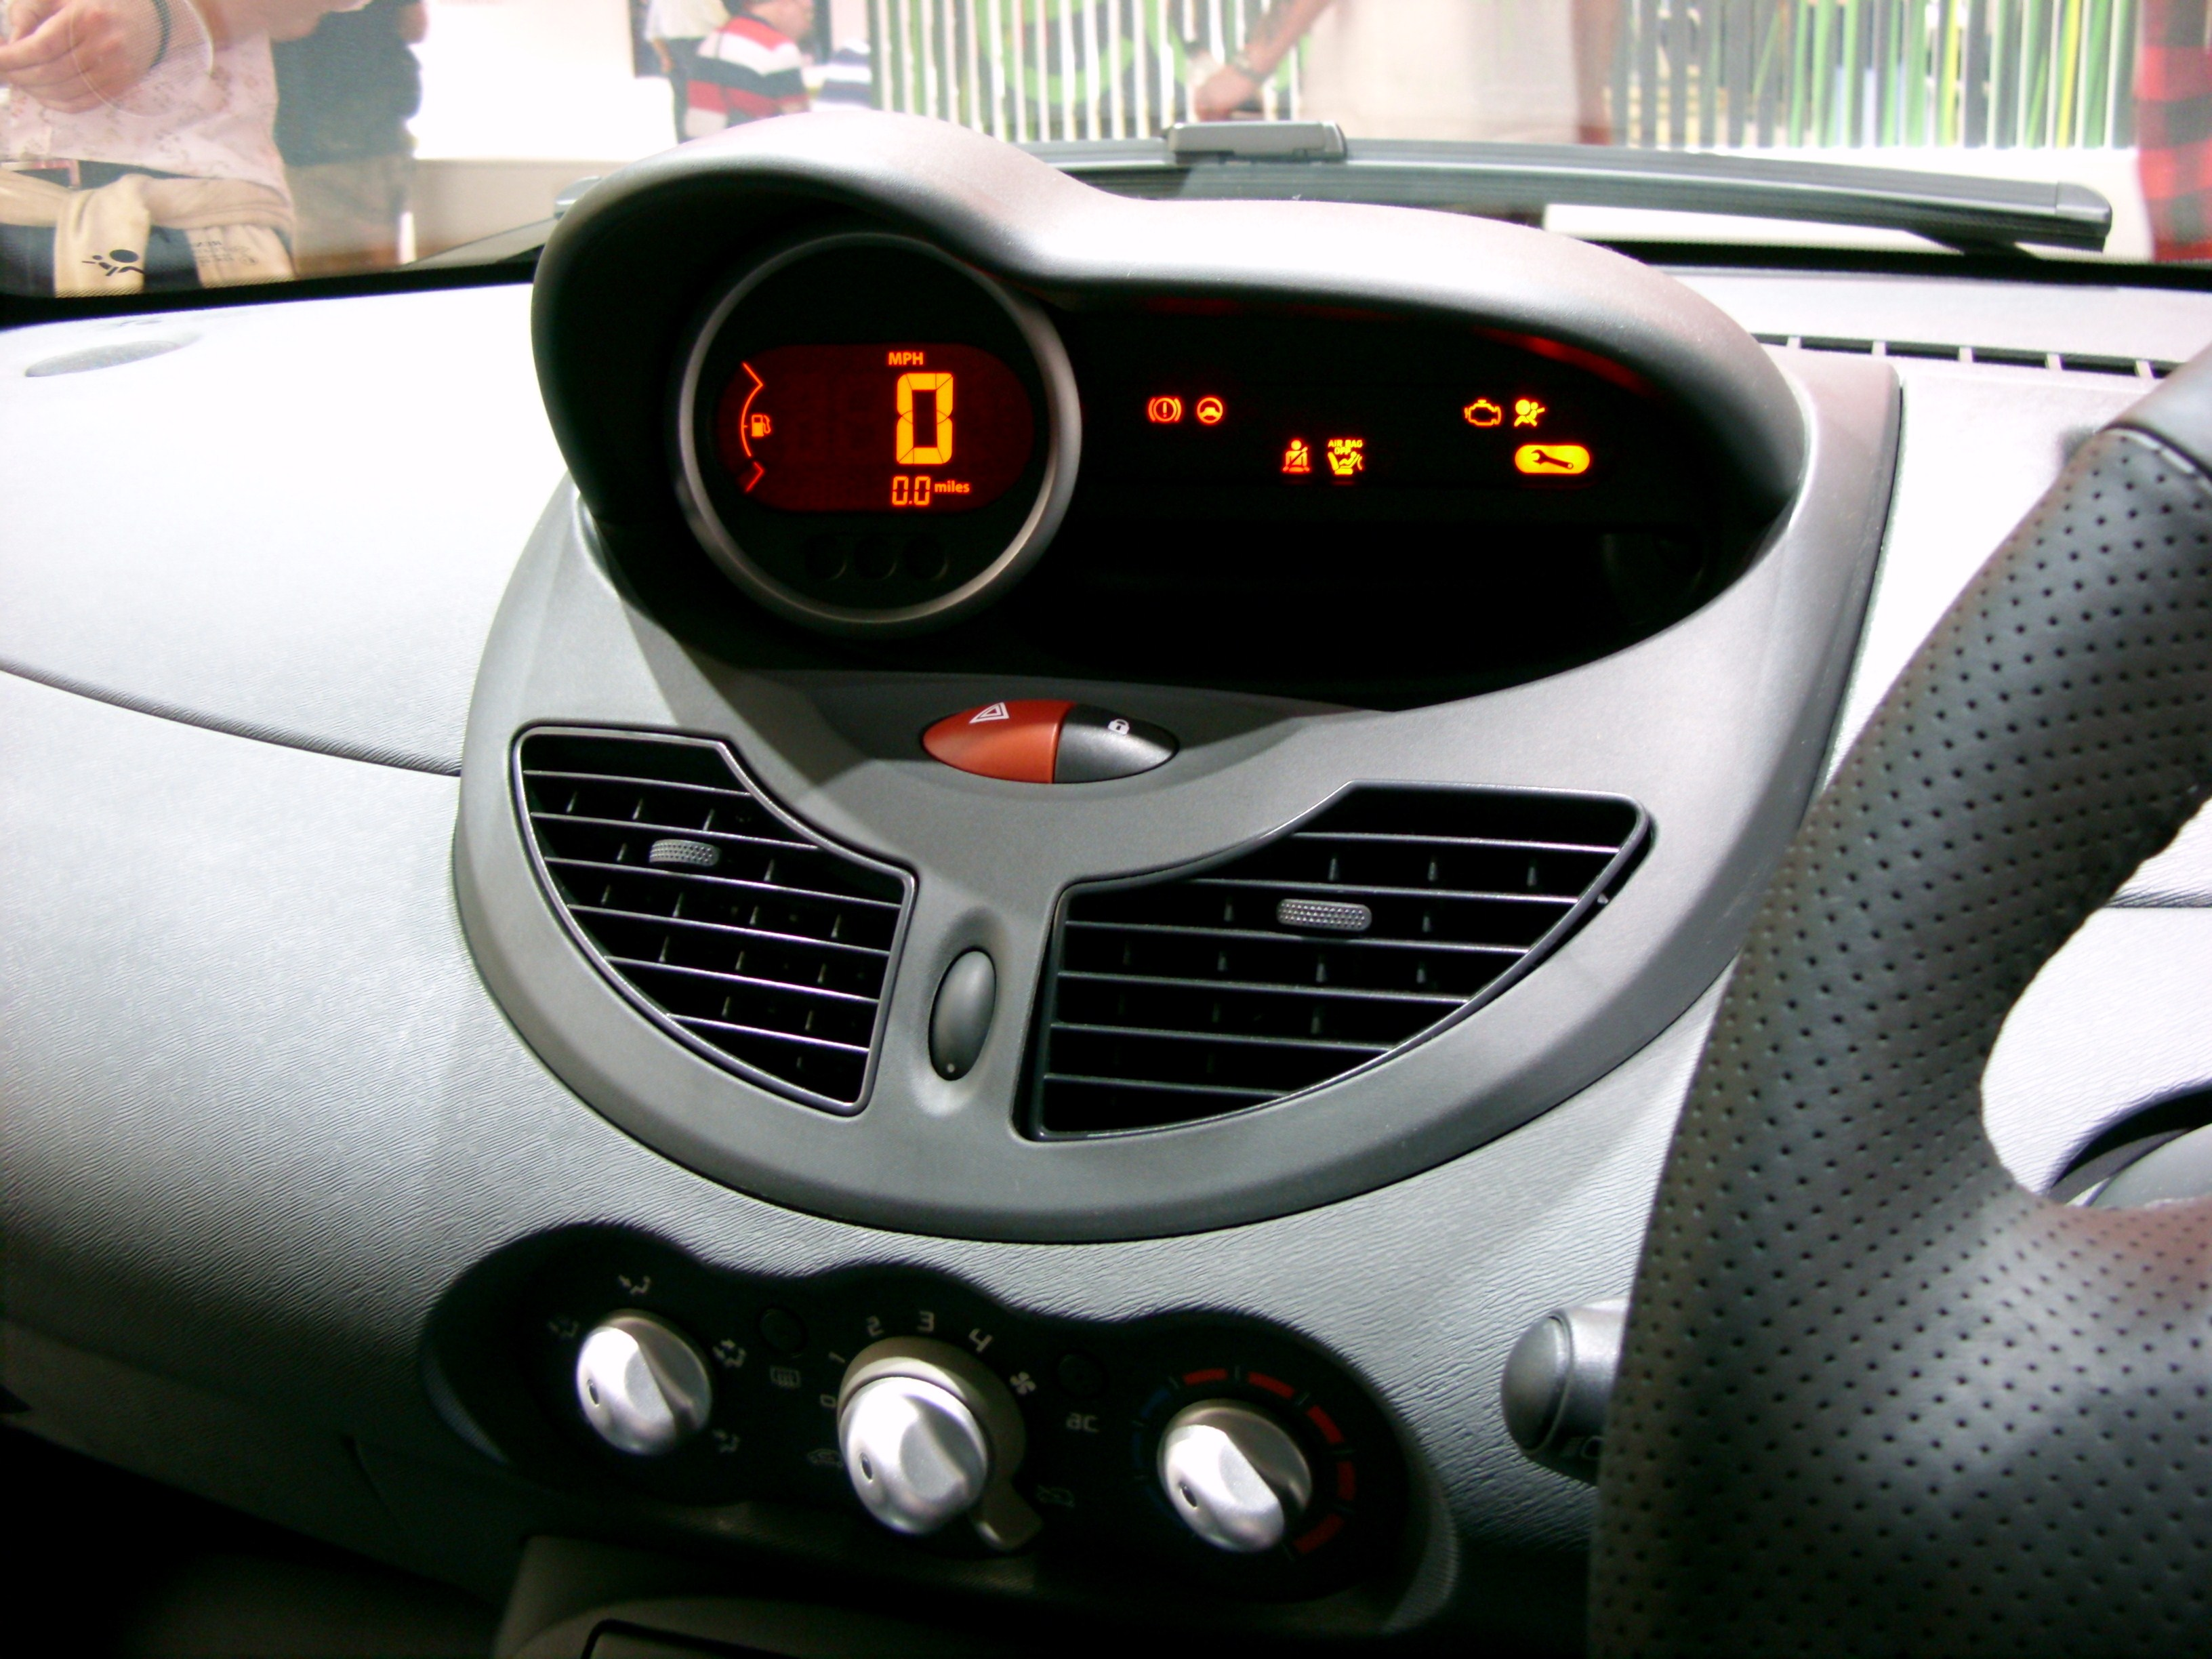 File:Renault Twingo Interior - Flickr - Alan D.jpg - Wikimedia Commons